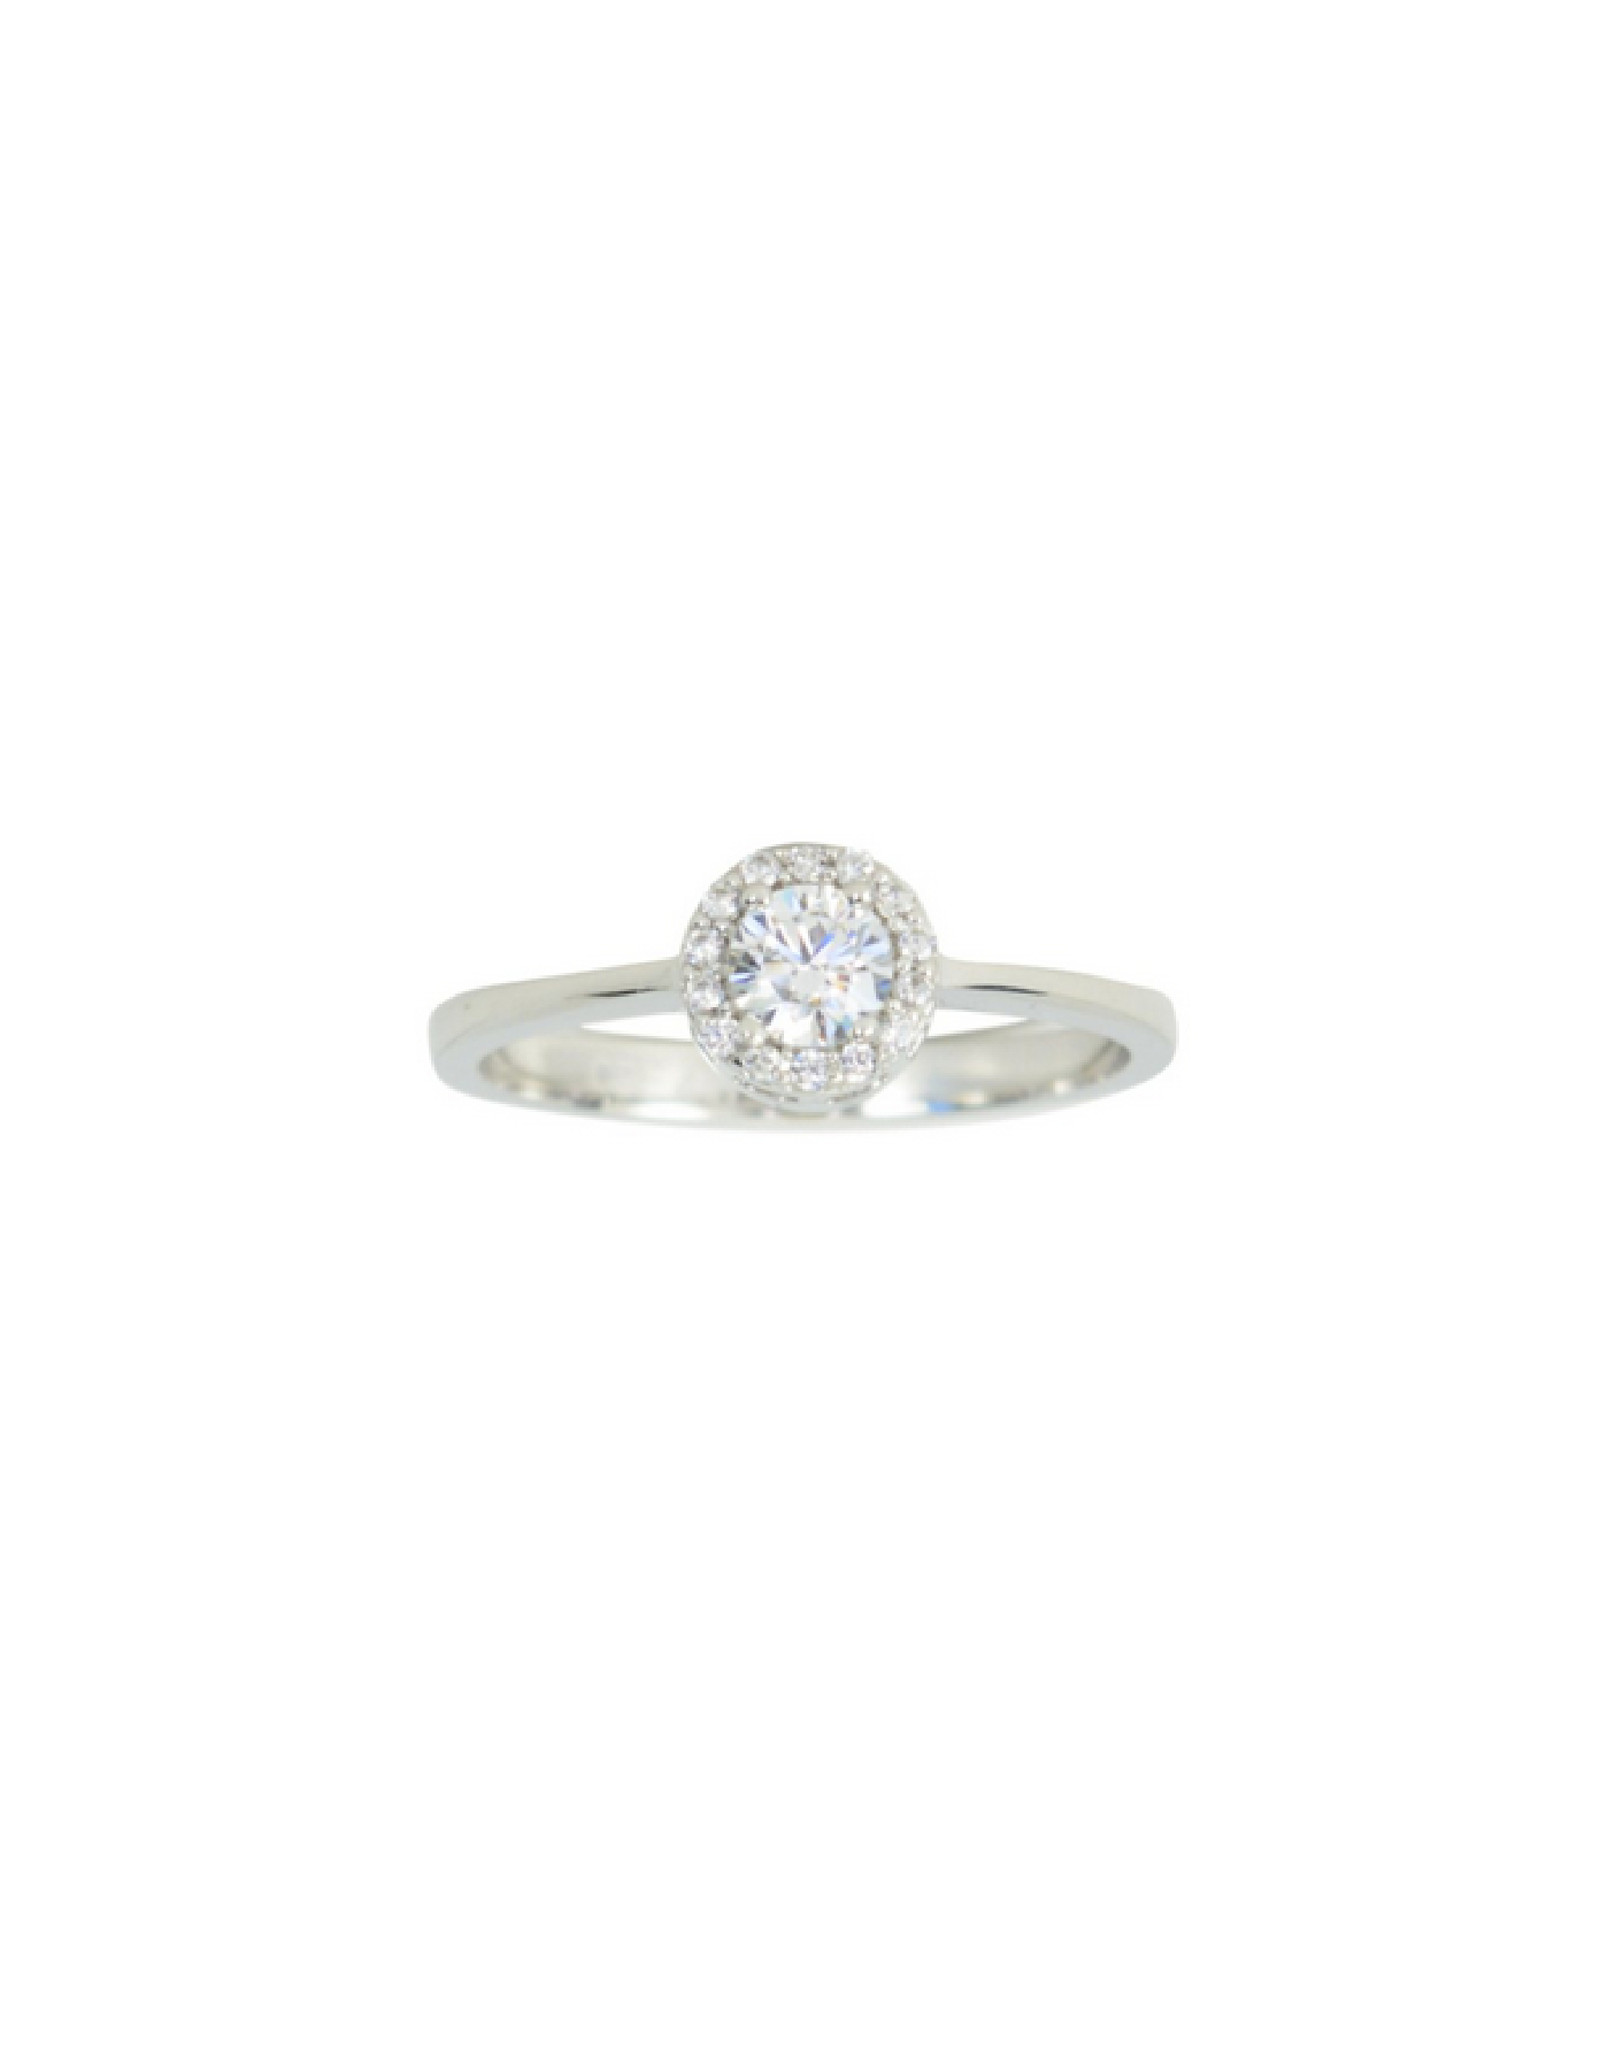 Bague solitaire halo Or blanc 10K